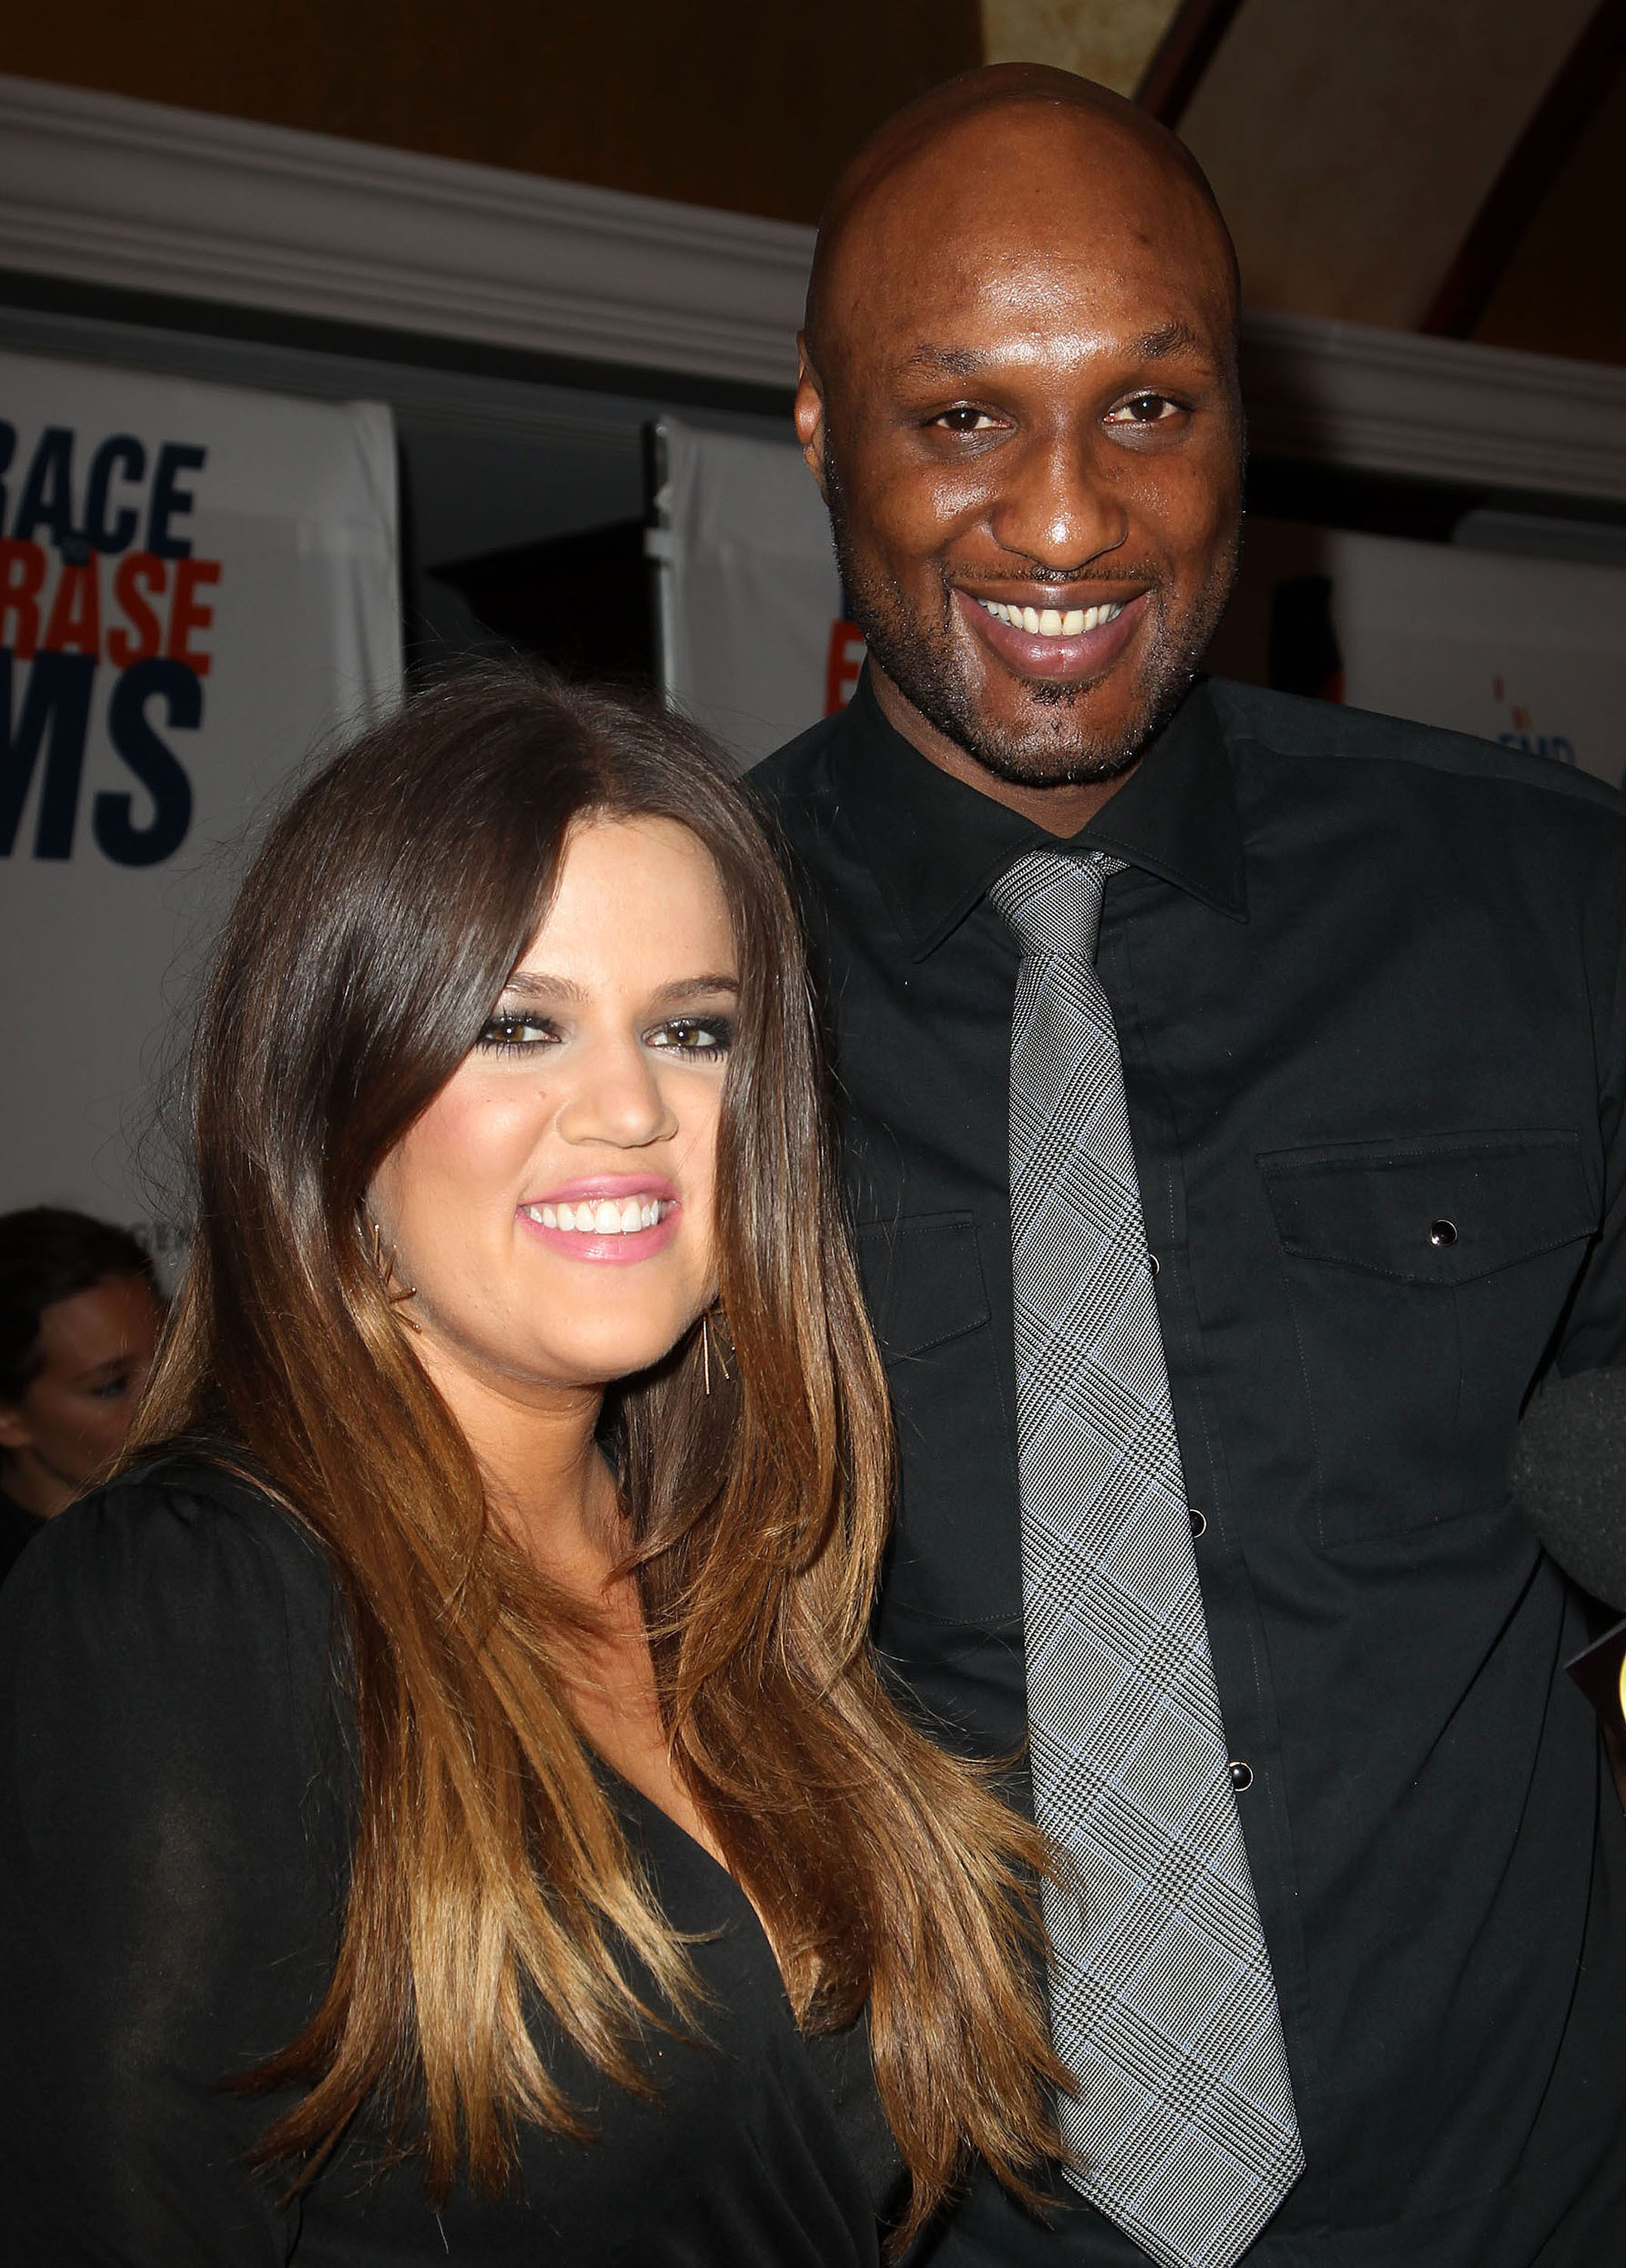 Khloe Kardashian & Lamar Odom — See Their Divorce Documents